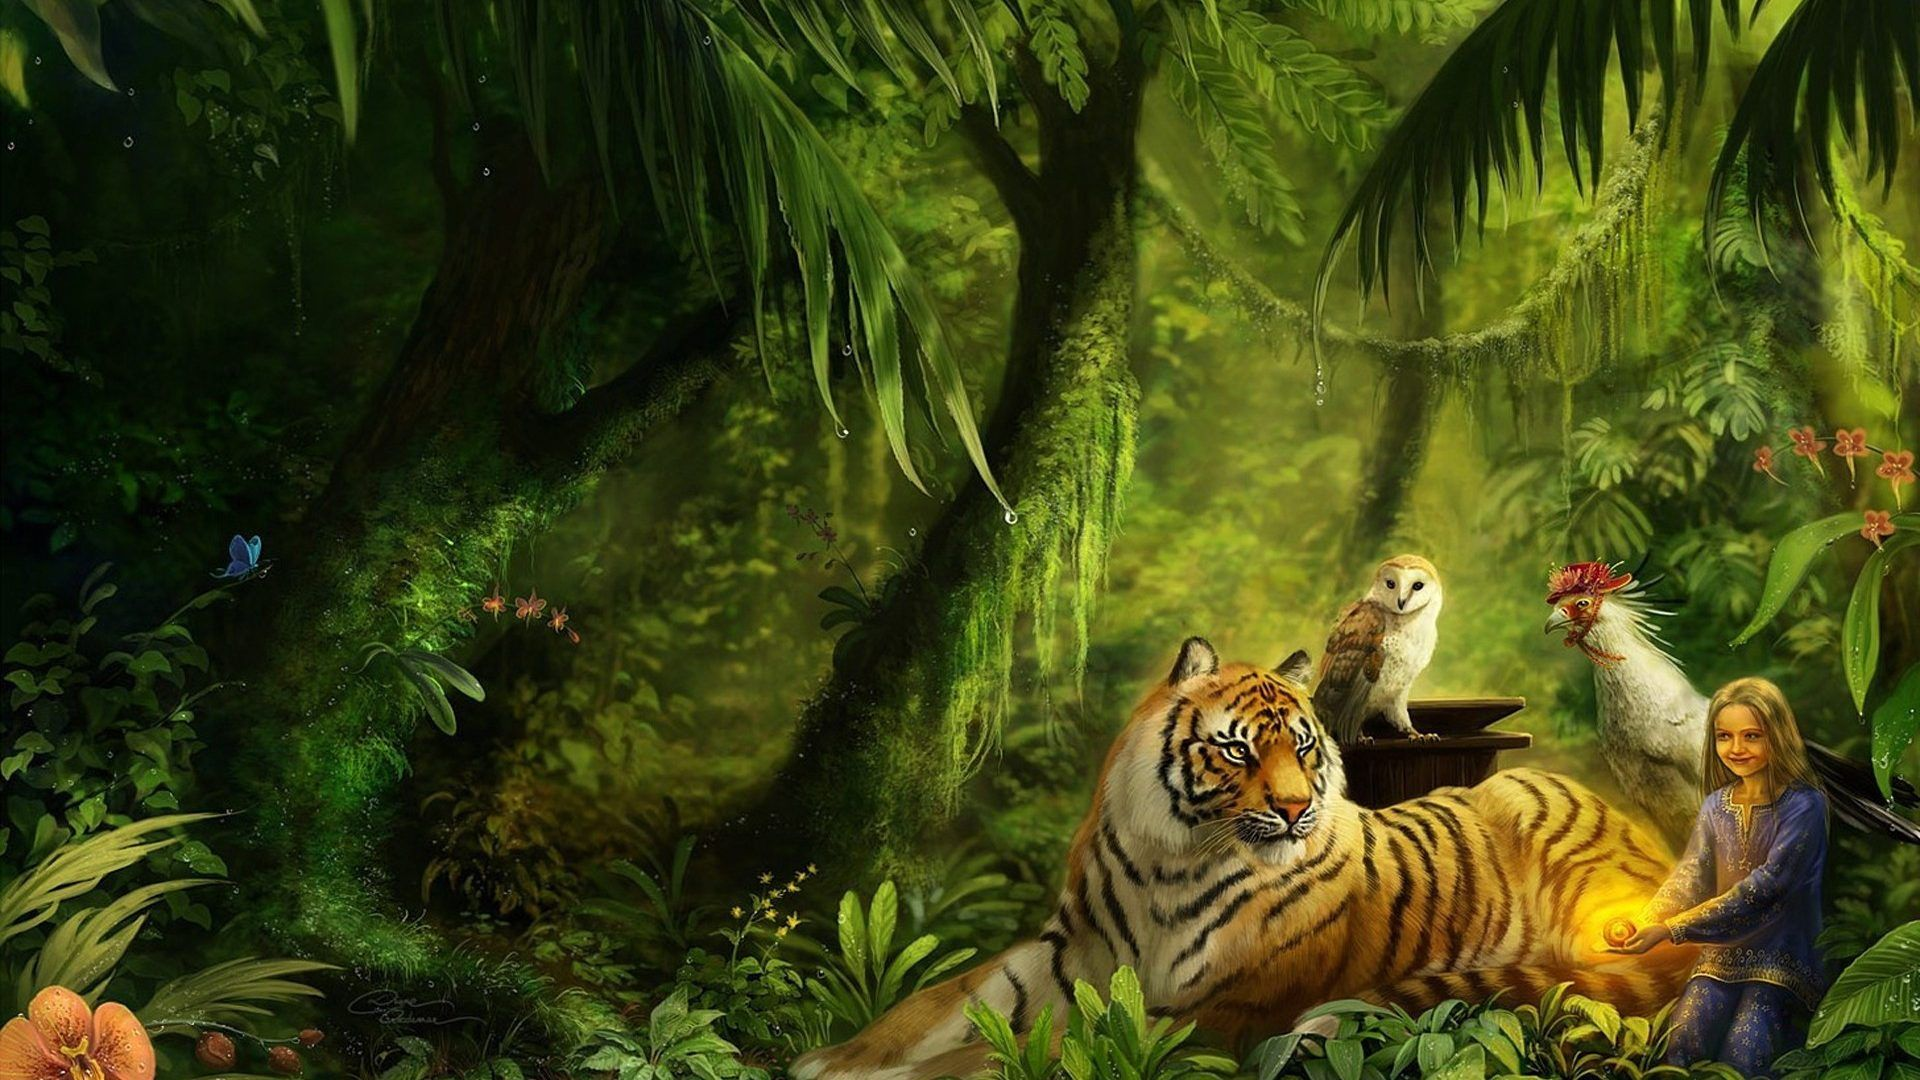 Forest Tiger Nature Dream Wallpapers1920x1080